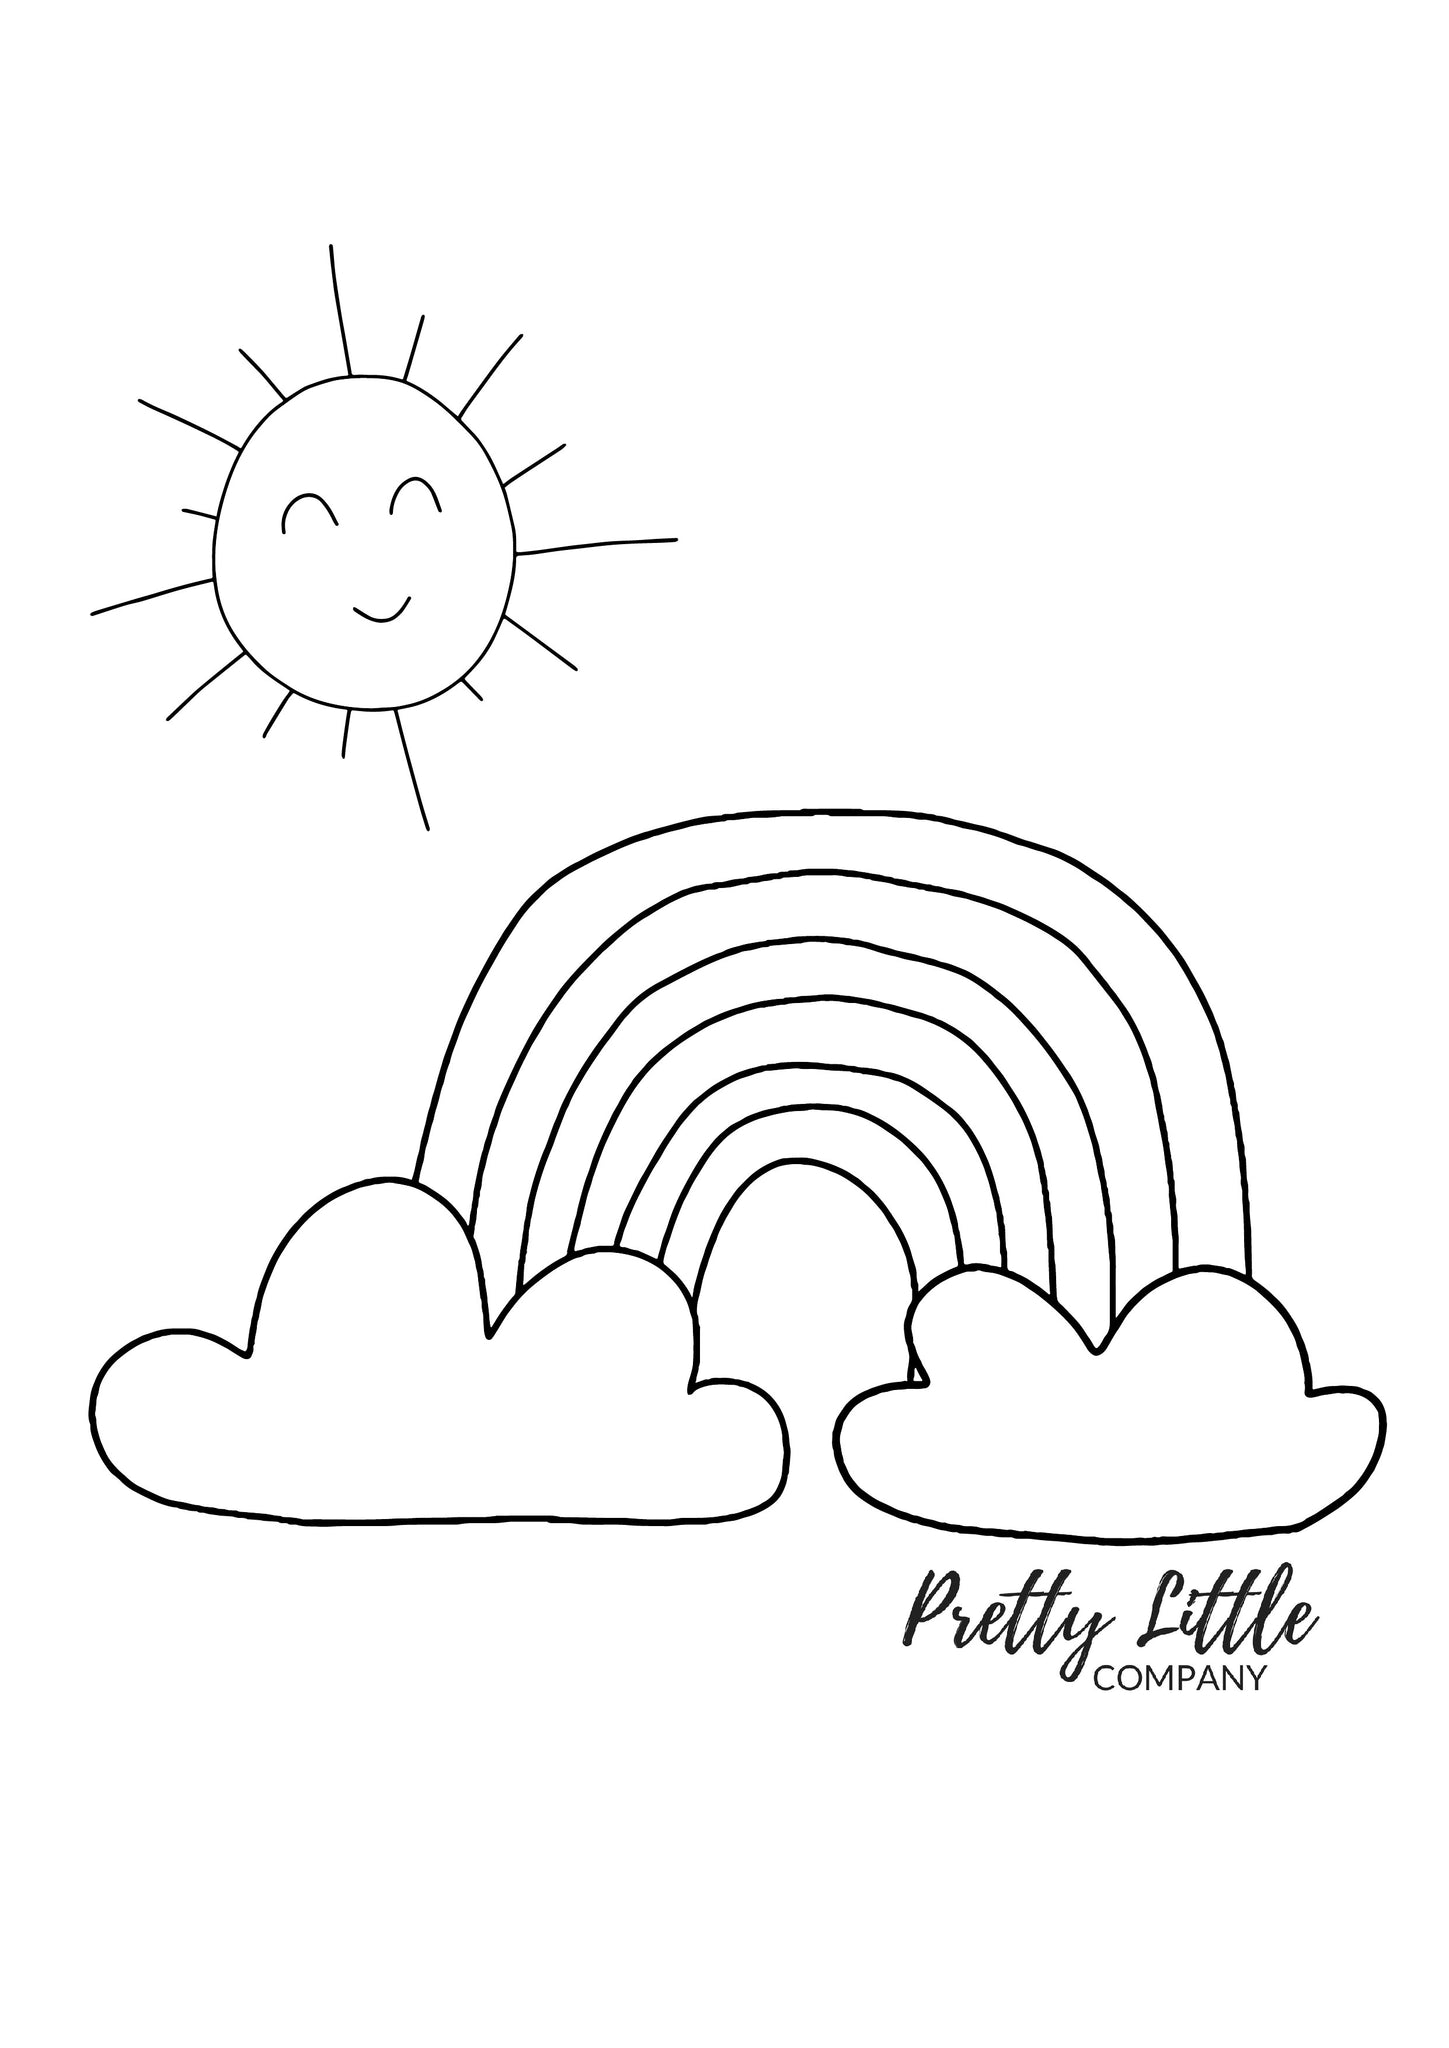 Rainbow Colouring Page - Free Download